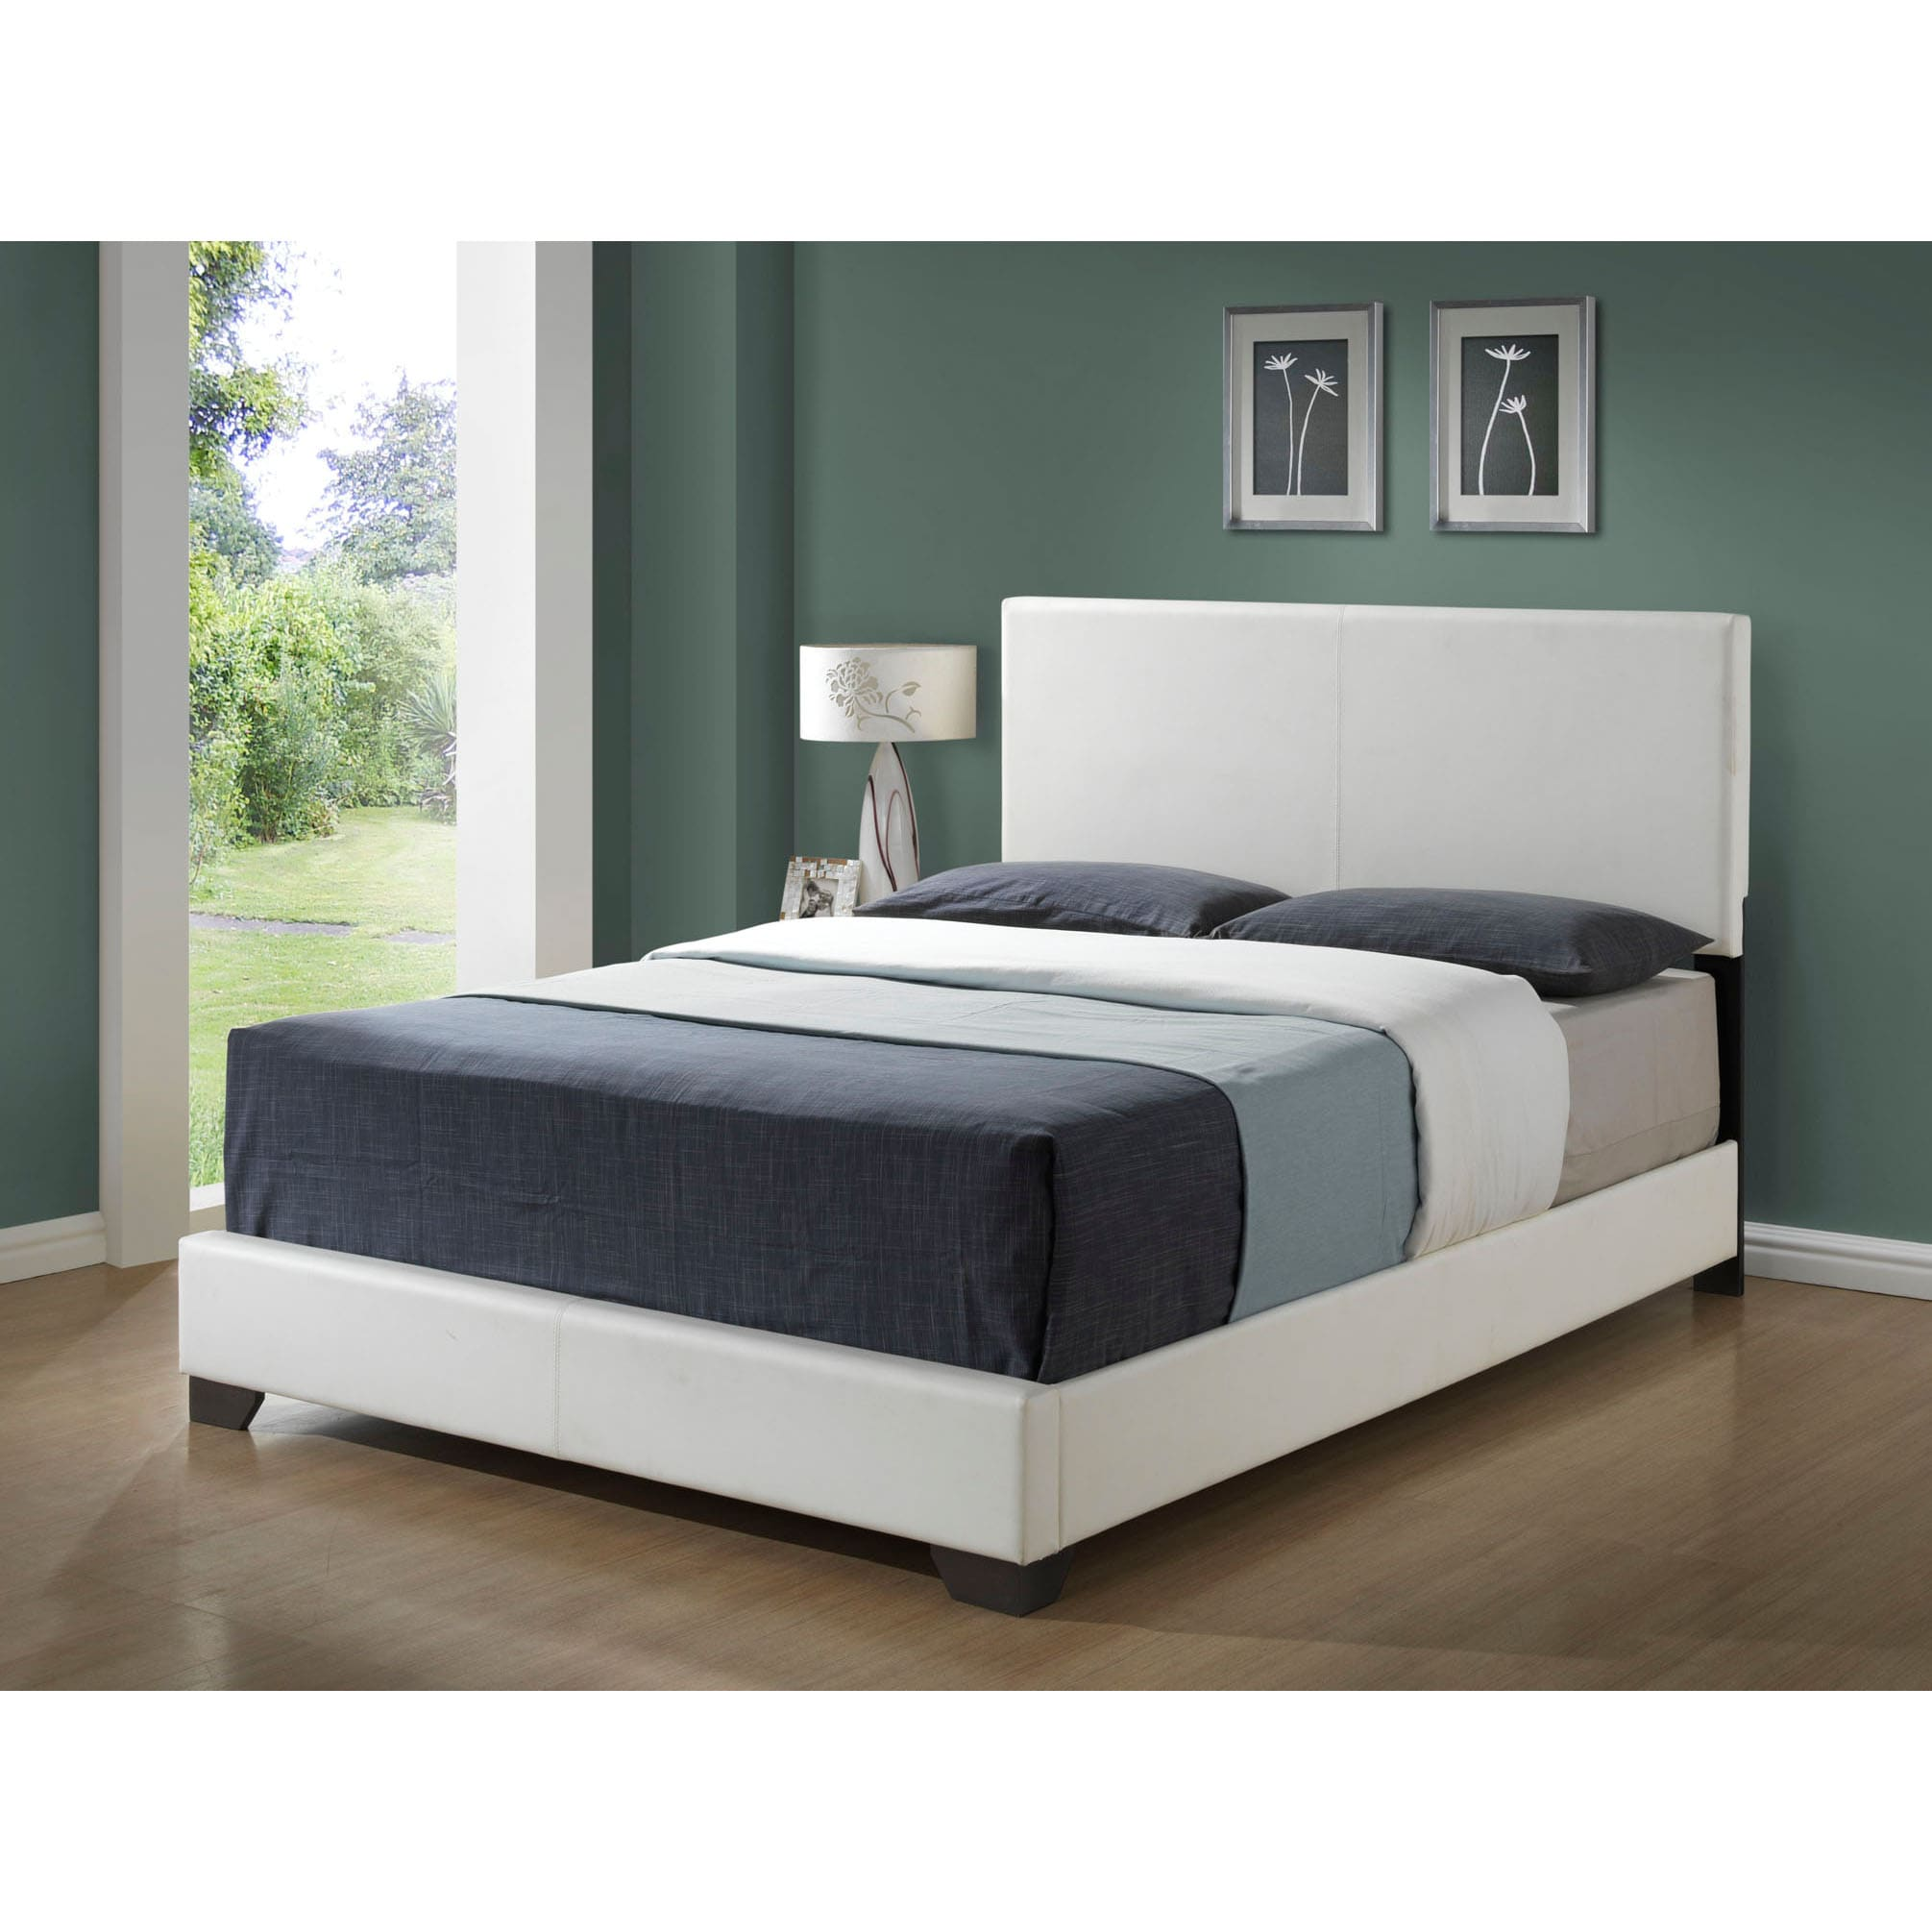 White Leather-look Queen Size Bed